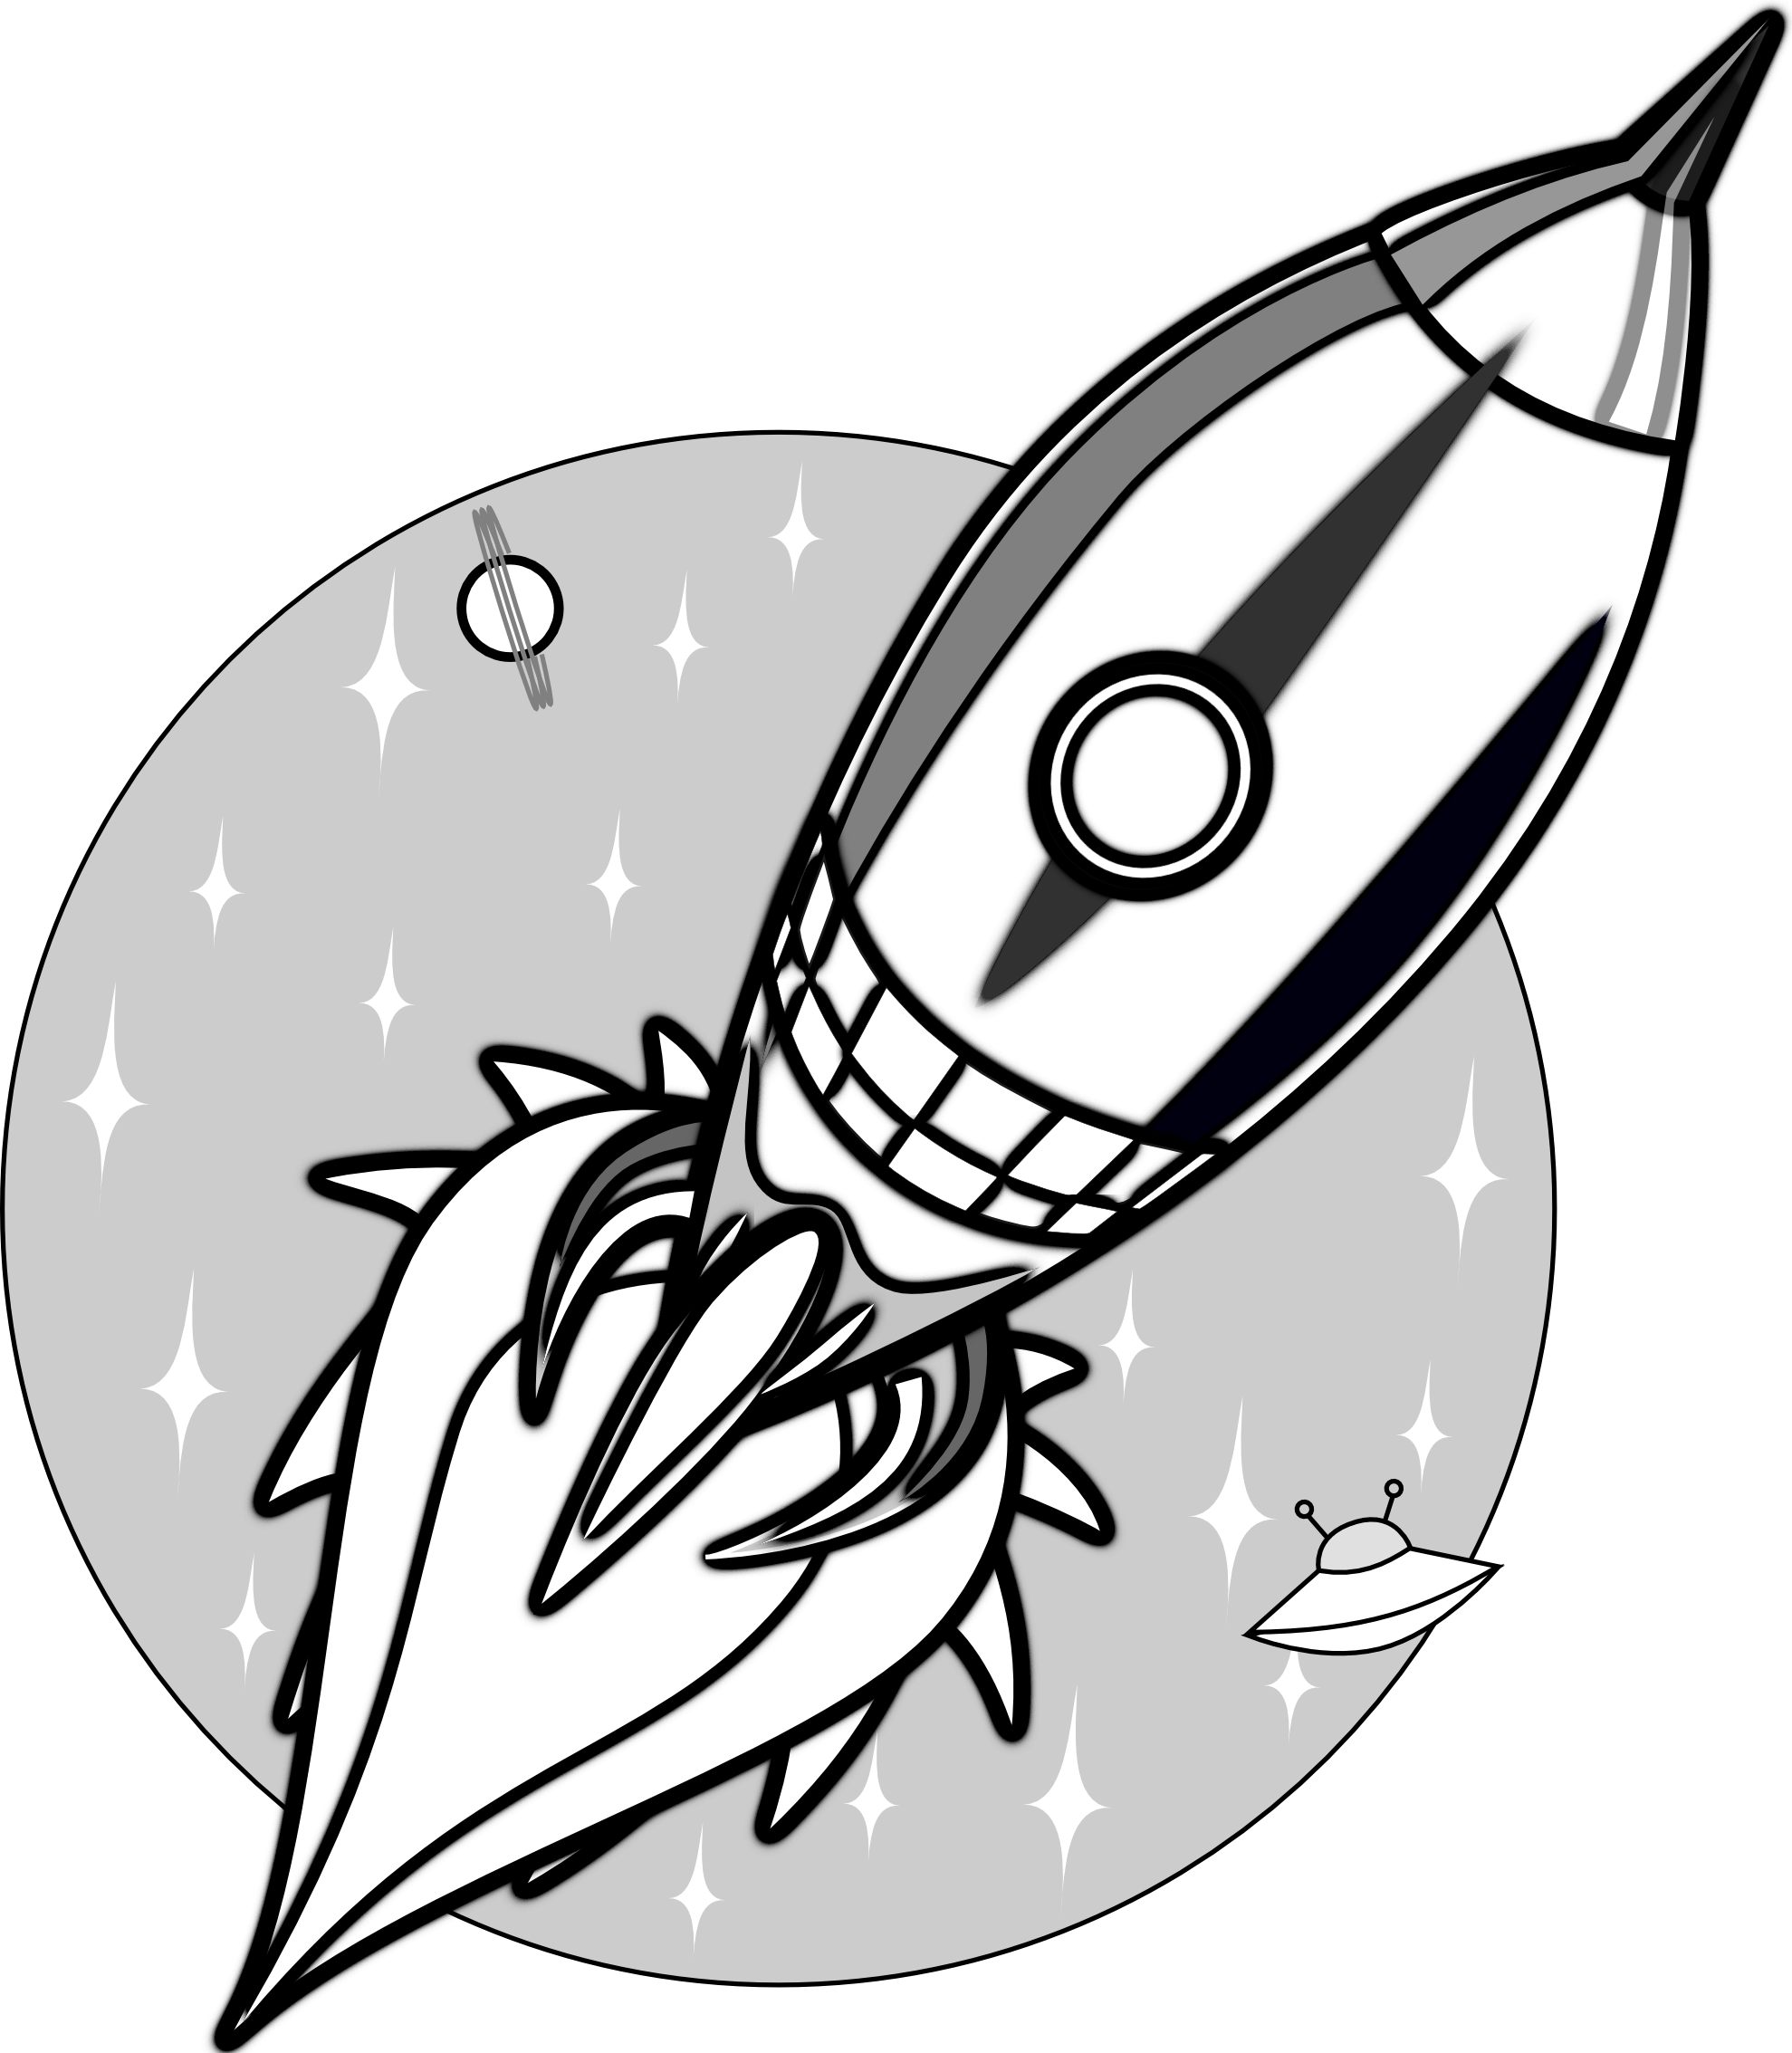 Spaceship clipart black transparent png royalty free Images For > Rocket Clip Art Black And White | Rockets ... png royalty free